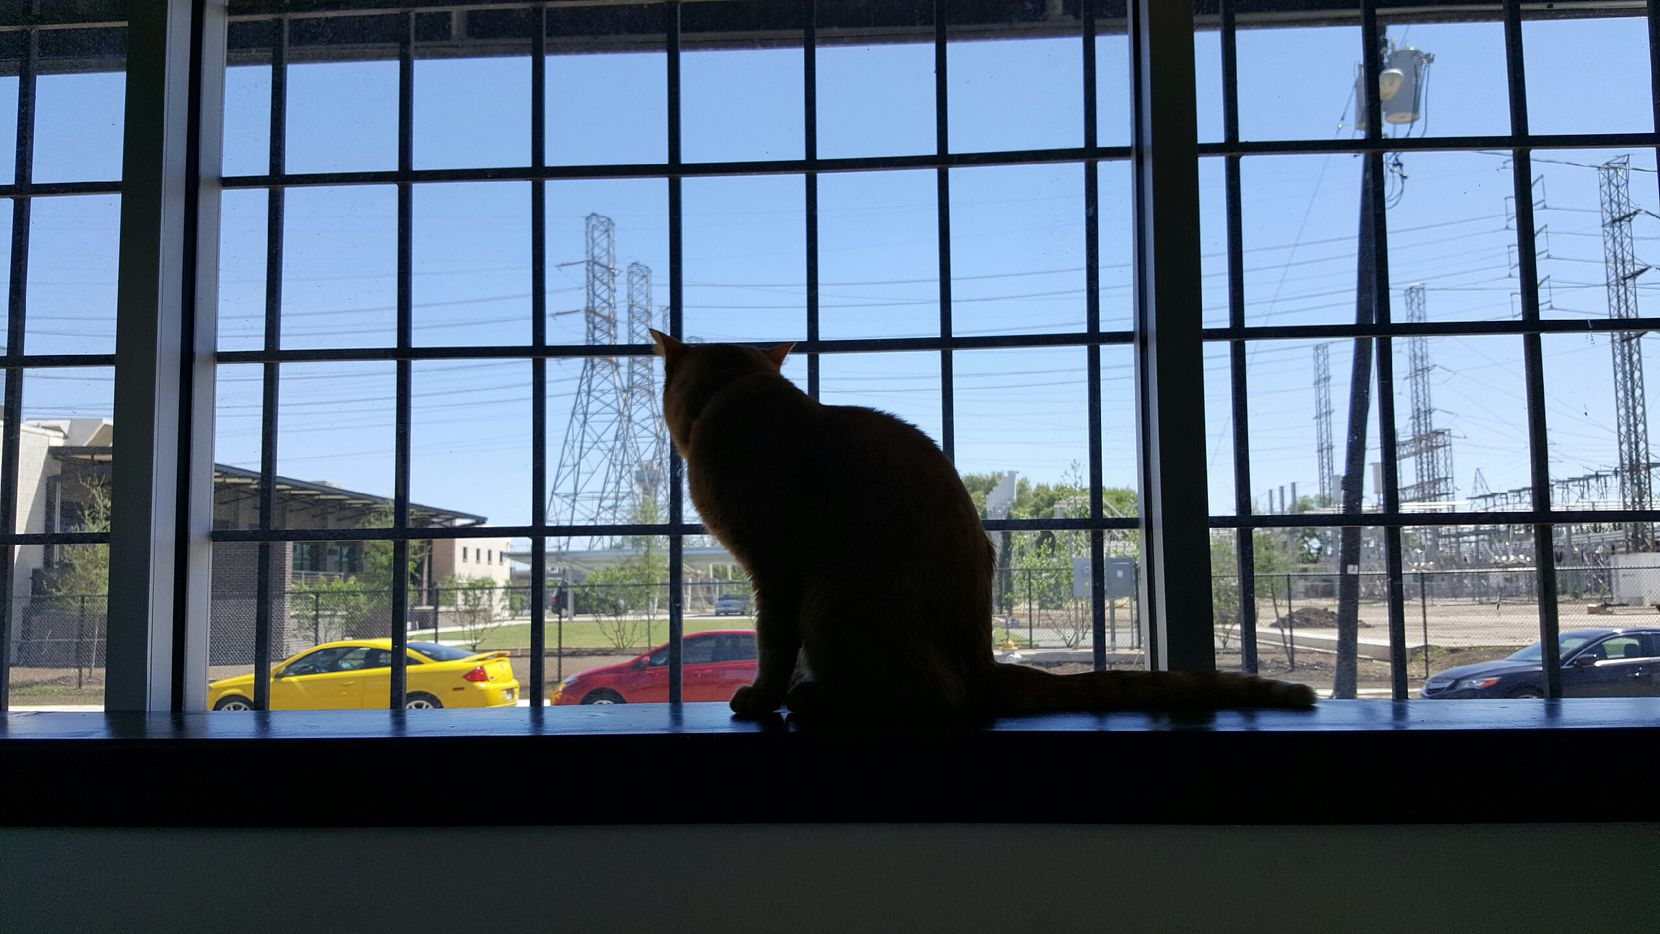 Harvey the cat looks out the window. The cat went missing in June 2016 from his home in Denver and was found March 2 down a 25-foot hole at a construction site near Highland Park.